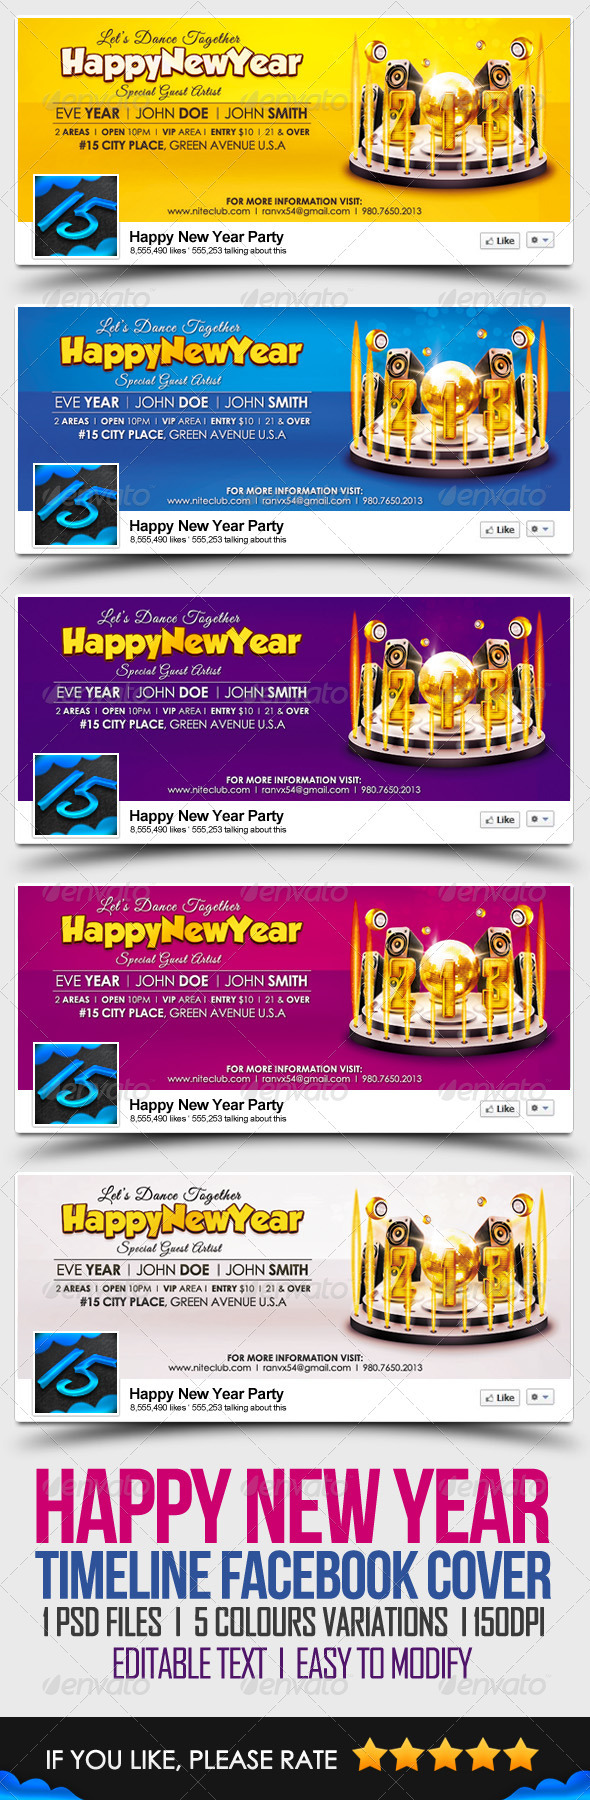 GraphicRiver Happy New Year Timeline FB Cover 3514982